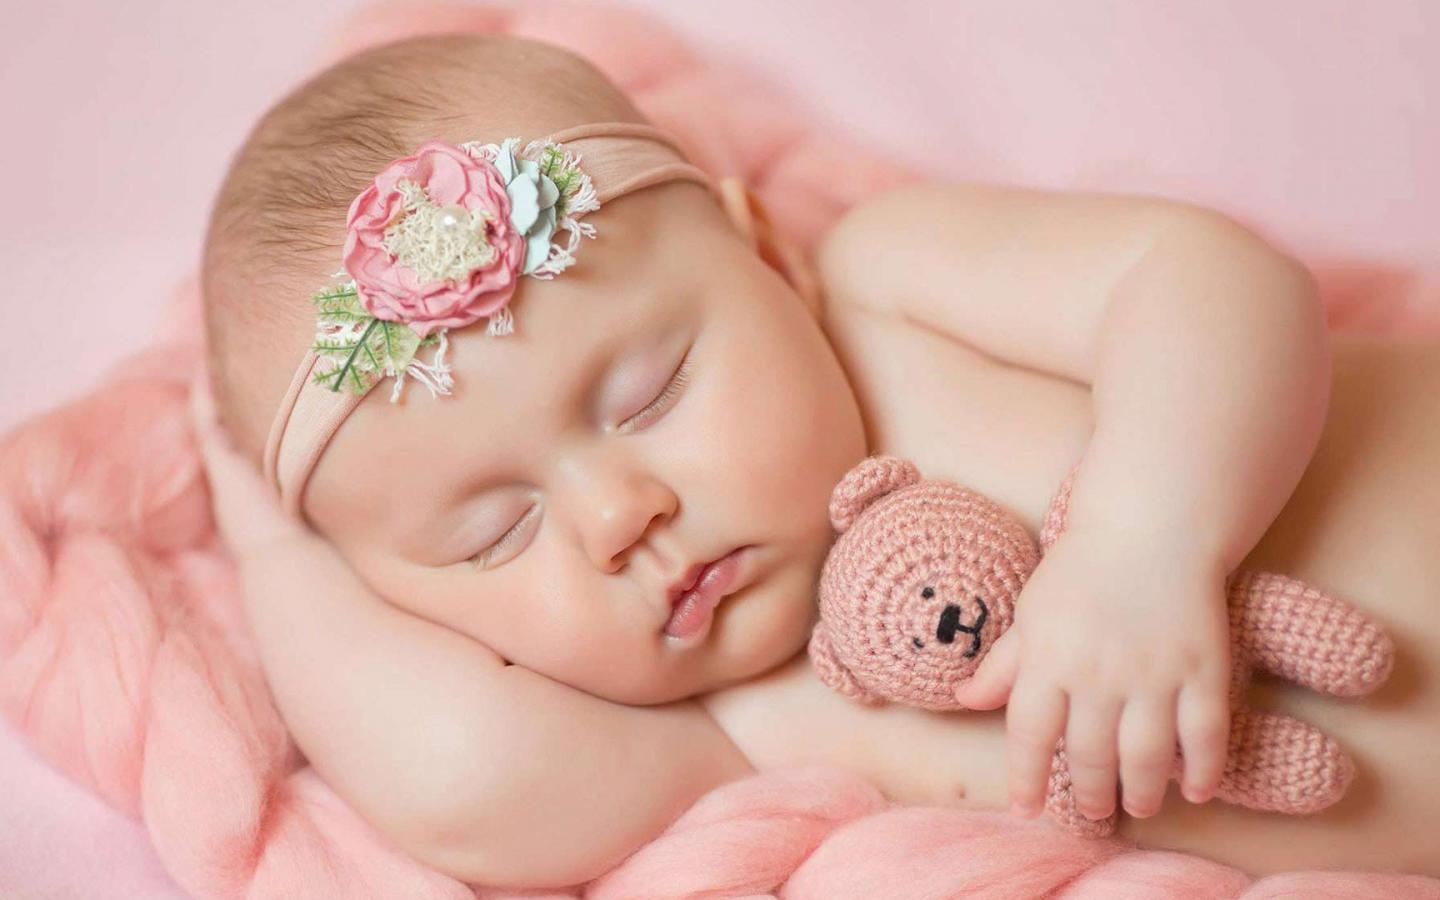 Cute Newborn Baby Girl Wallpaper Sleeping Baby Images In Hd For Photo Session Hd